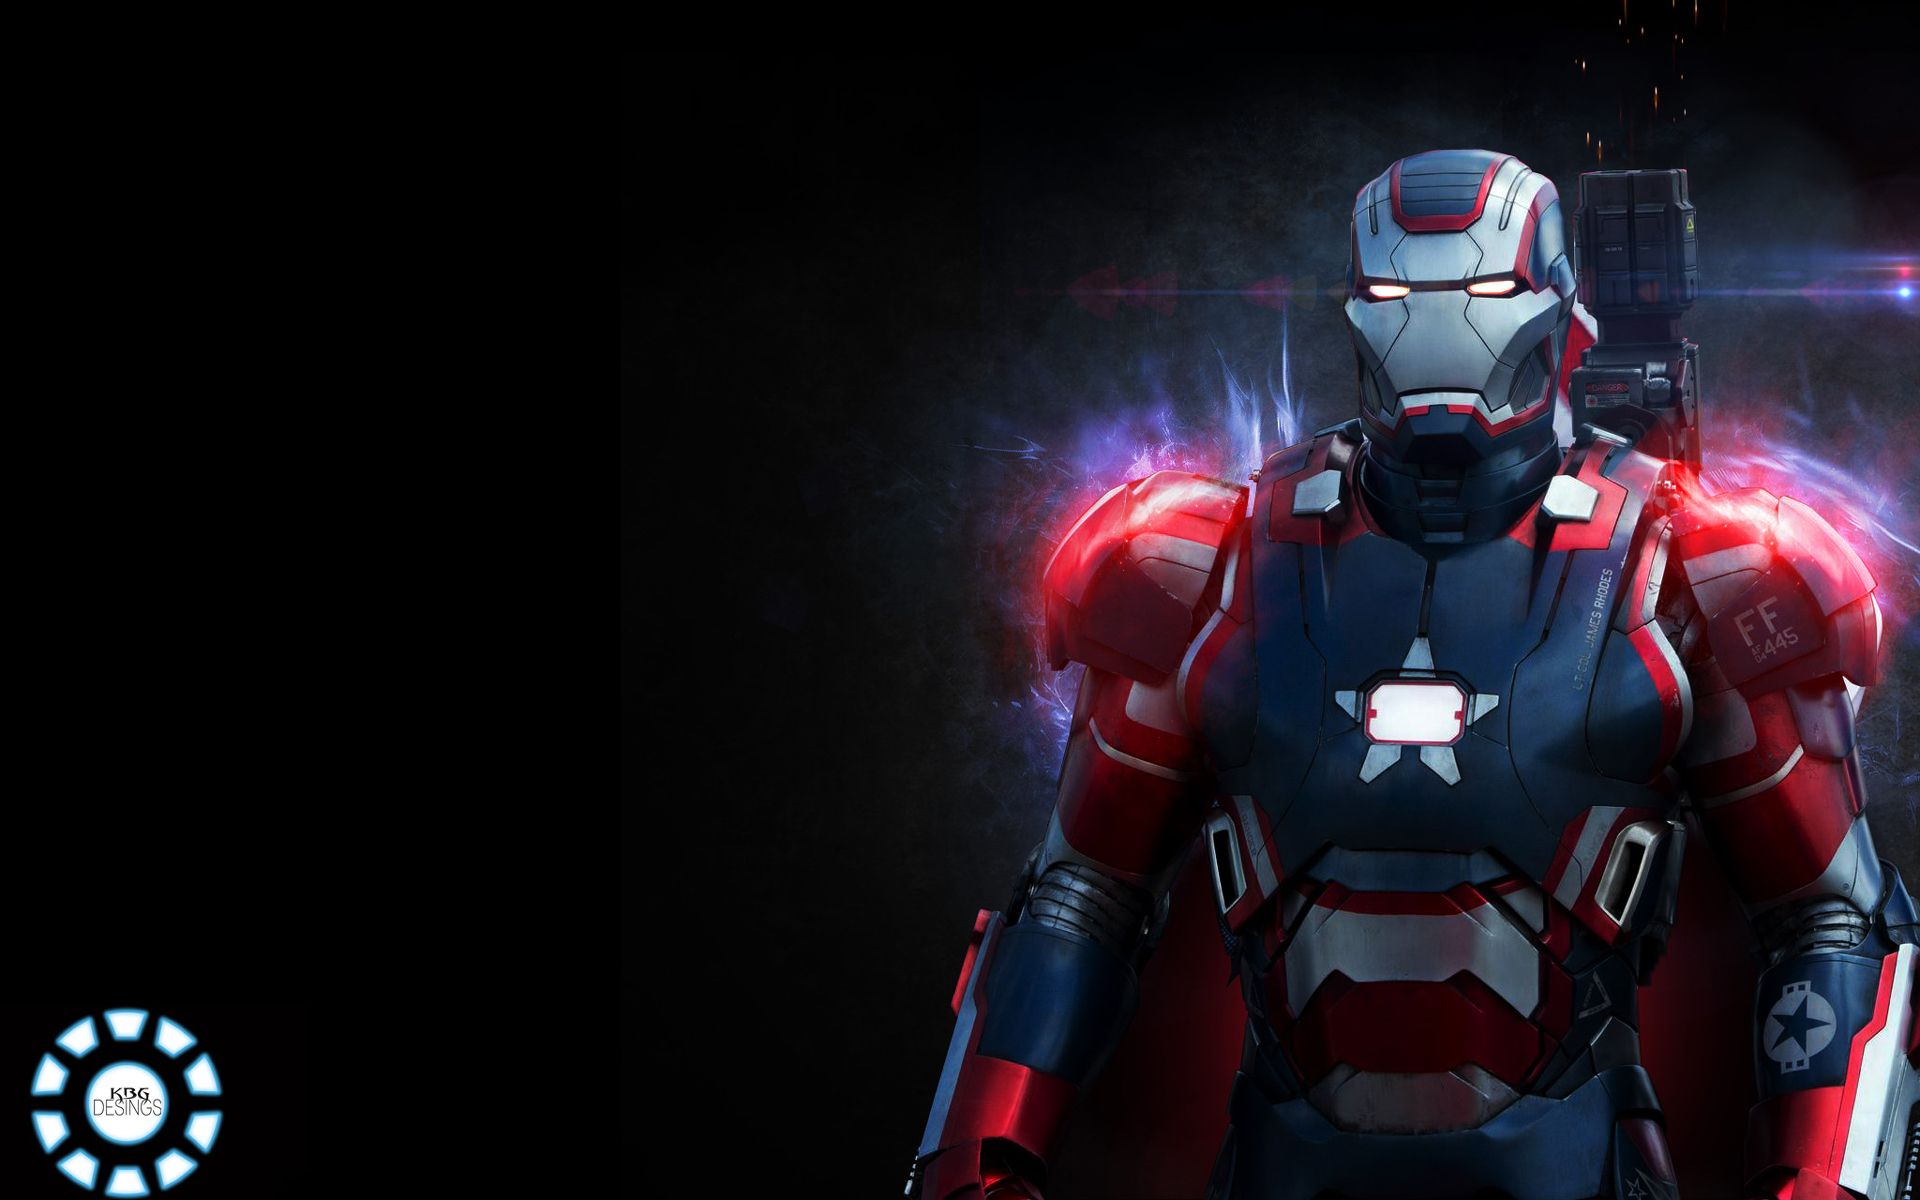 Free Download Iron Man 3 Exclusive Hd Wallpapers 2322 1920x1200